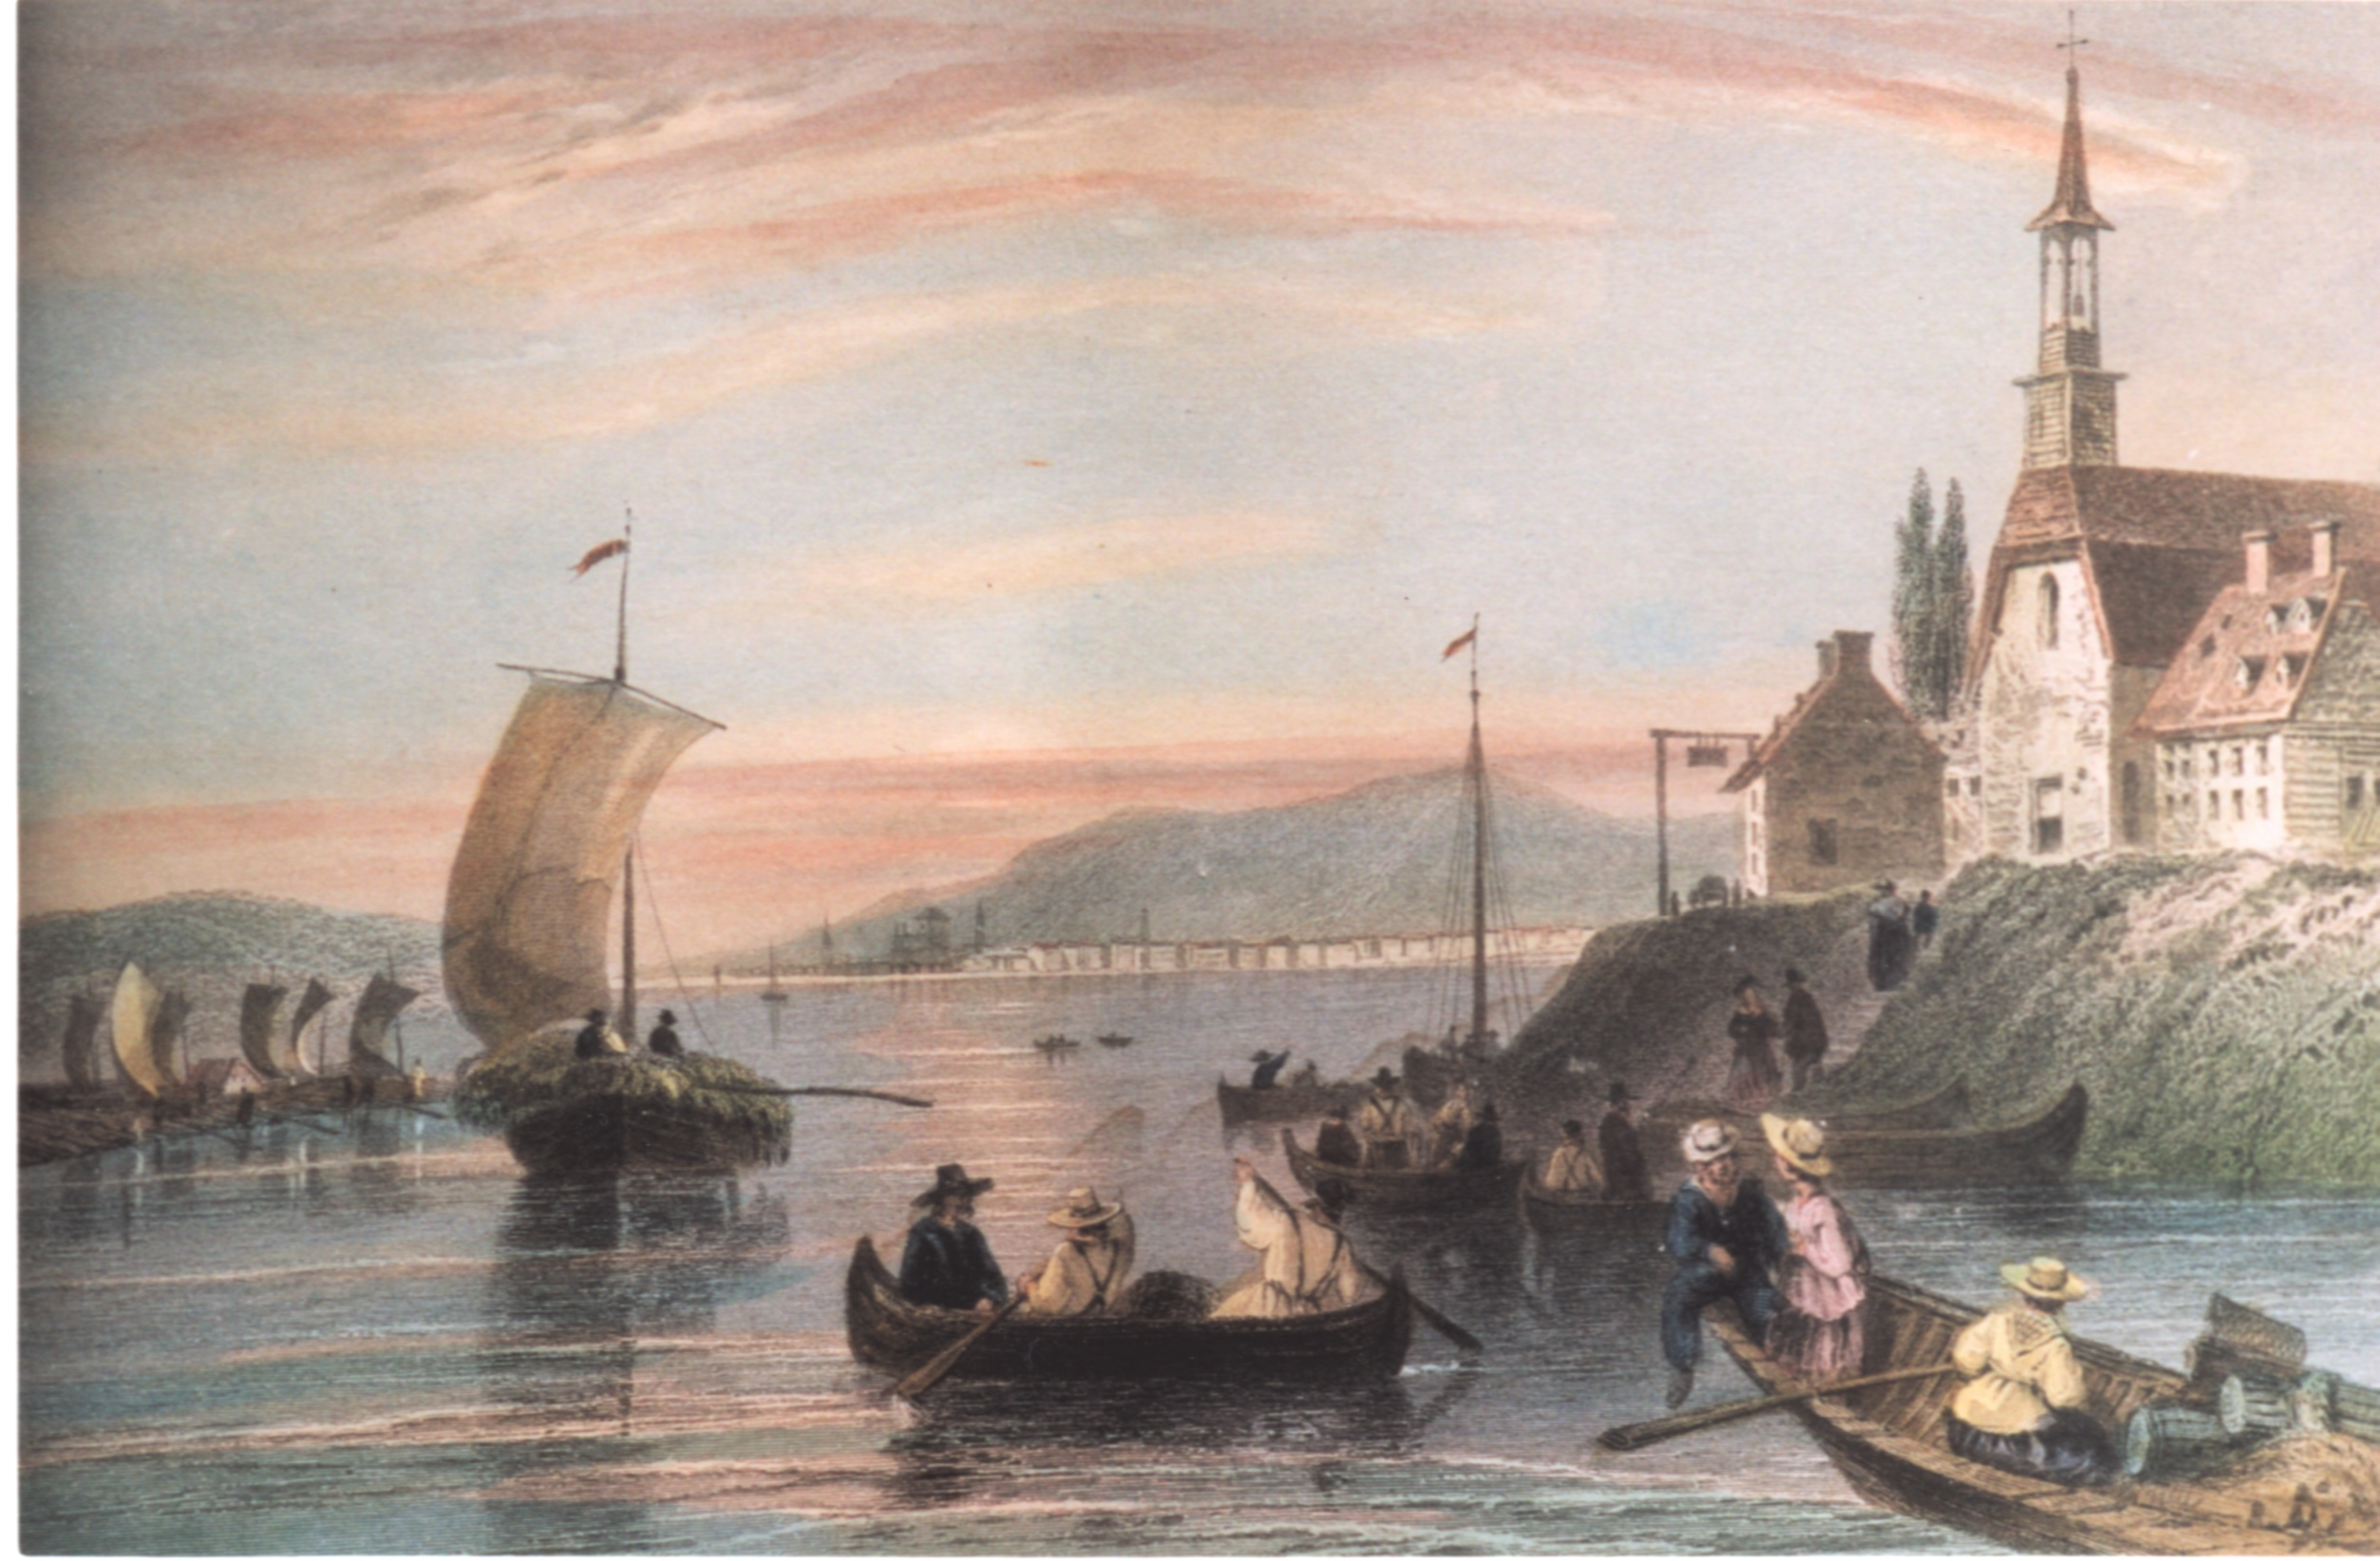 Painting of people in rowboats near a town on a headland, 1839